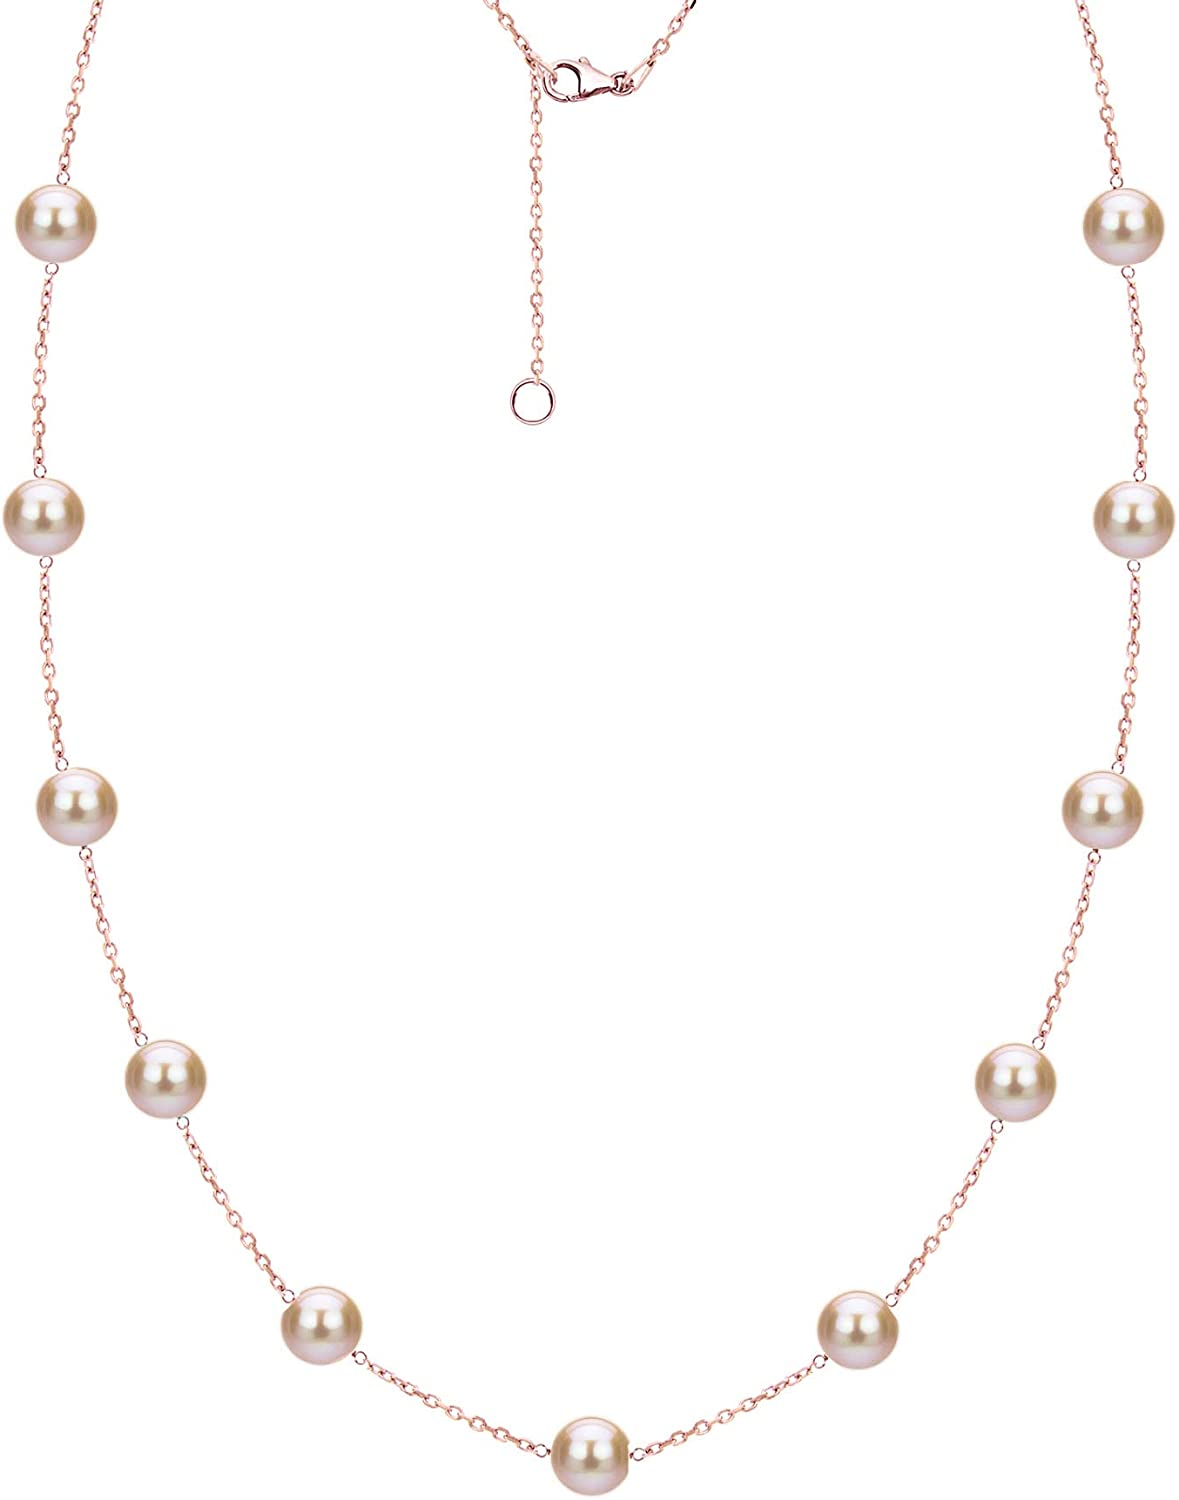 Tin Cup 安値 Station 毎日続々入荷 Chain Cultured Freshwater Necklace Pearl Pink 18